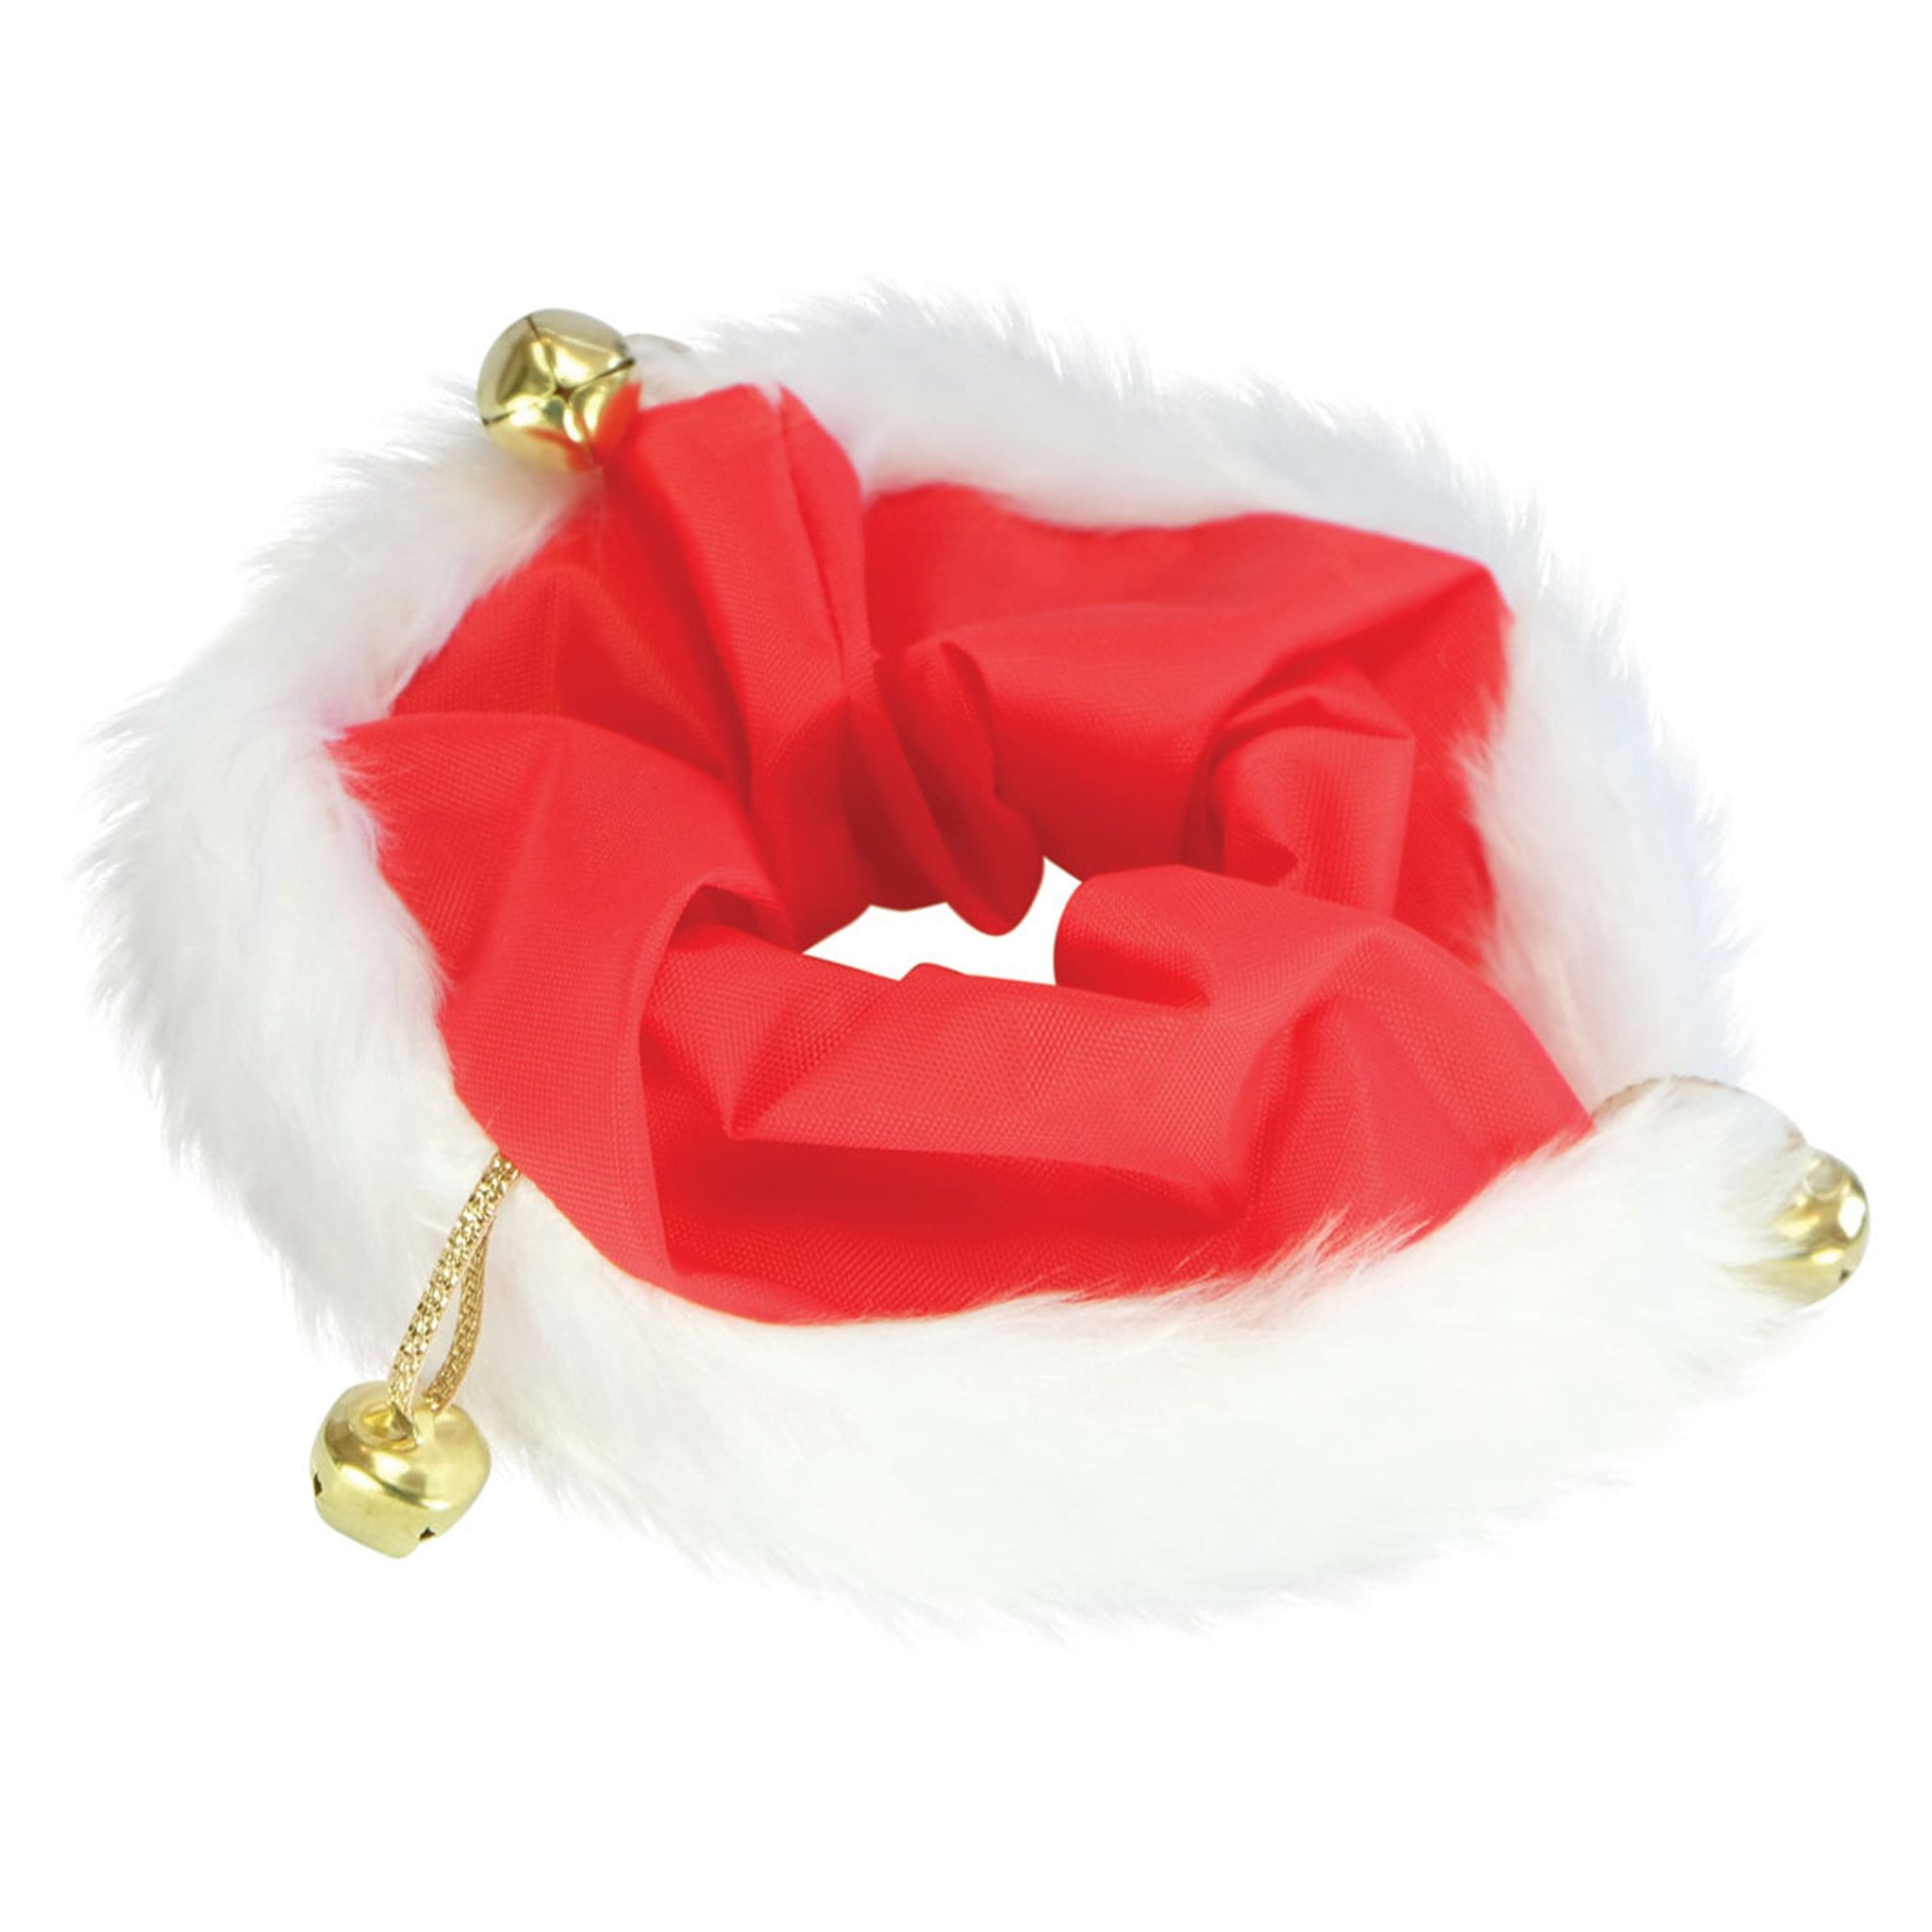 ShowQuest Christmas Scrunchie 20910